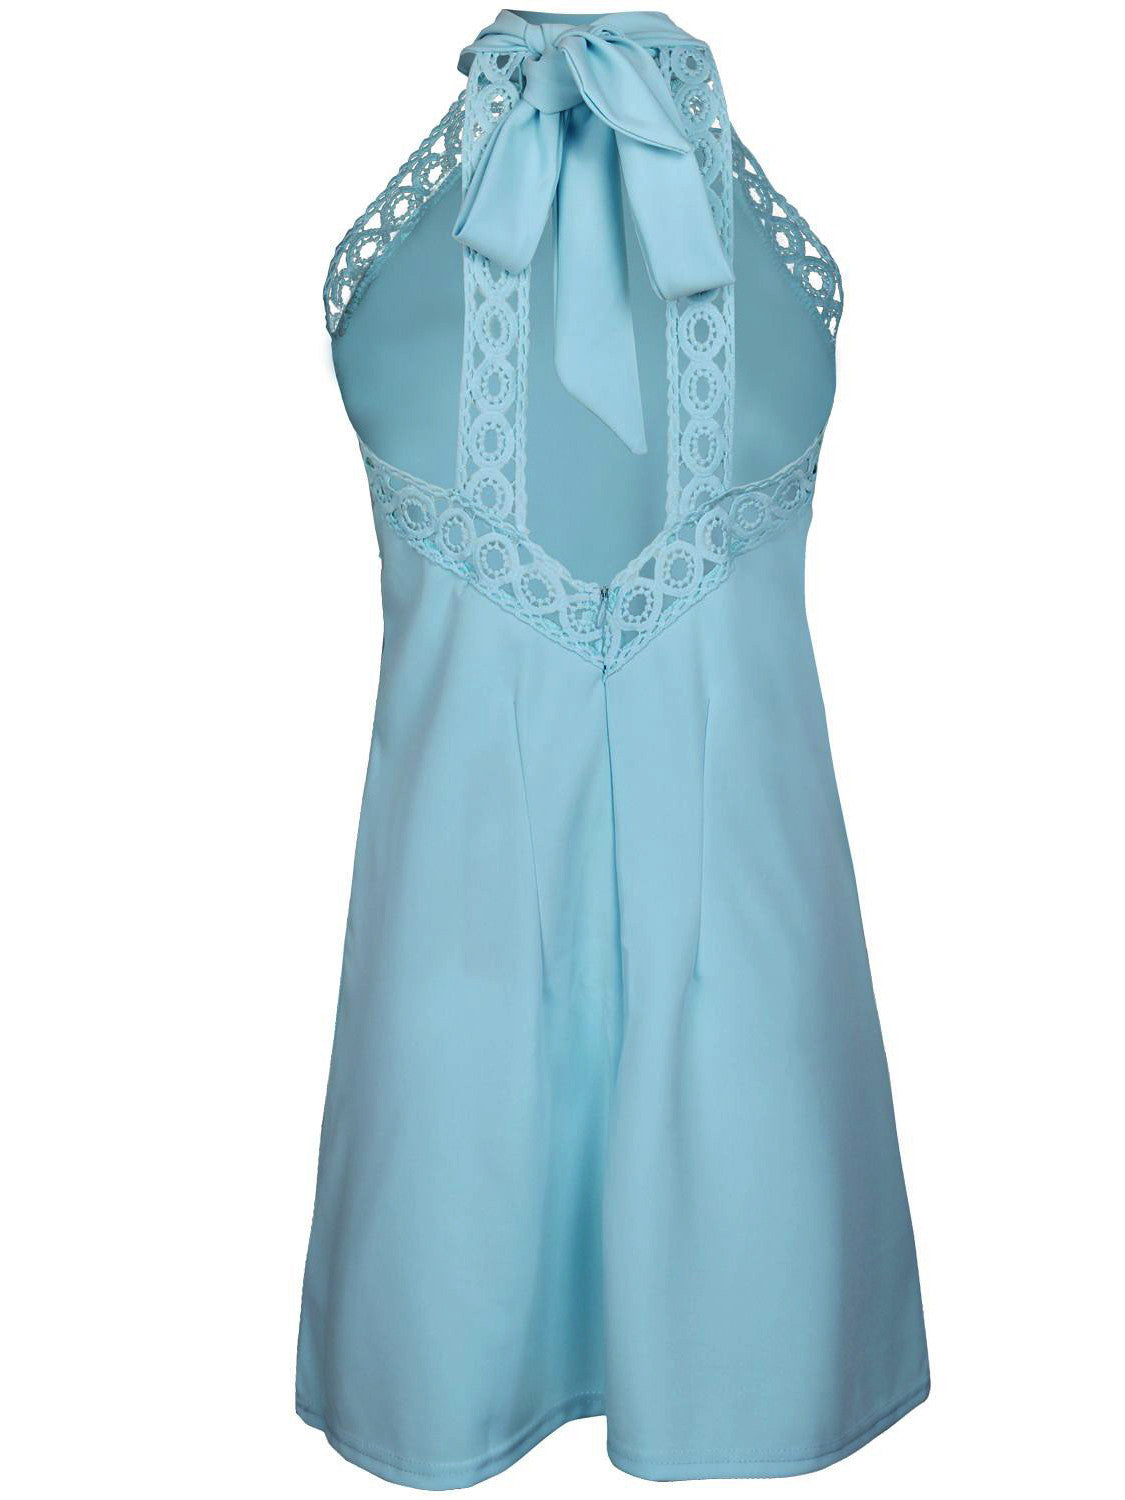 Light Blue Halter Tie Neck Cut Away Shoulder Lace Trim A-line Dress